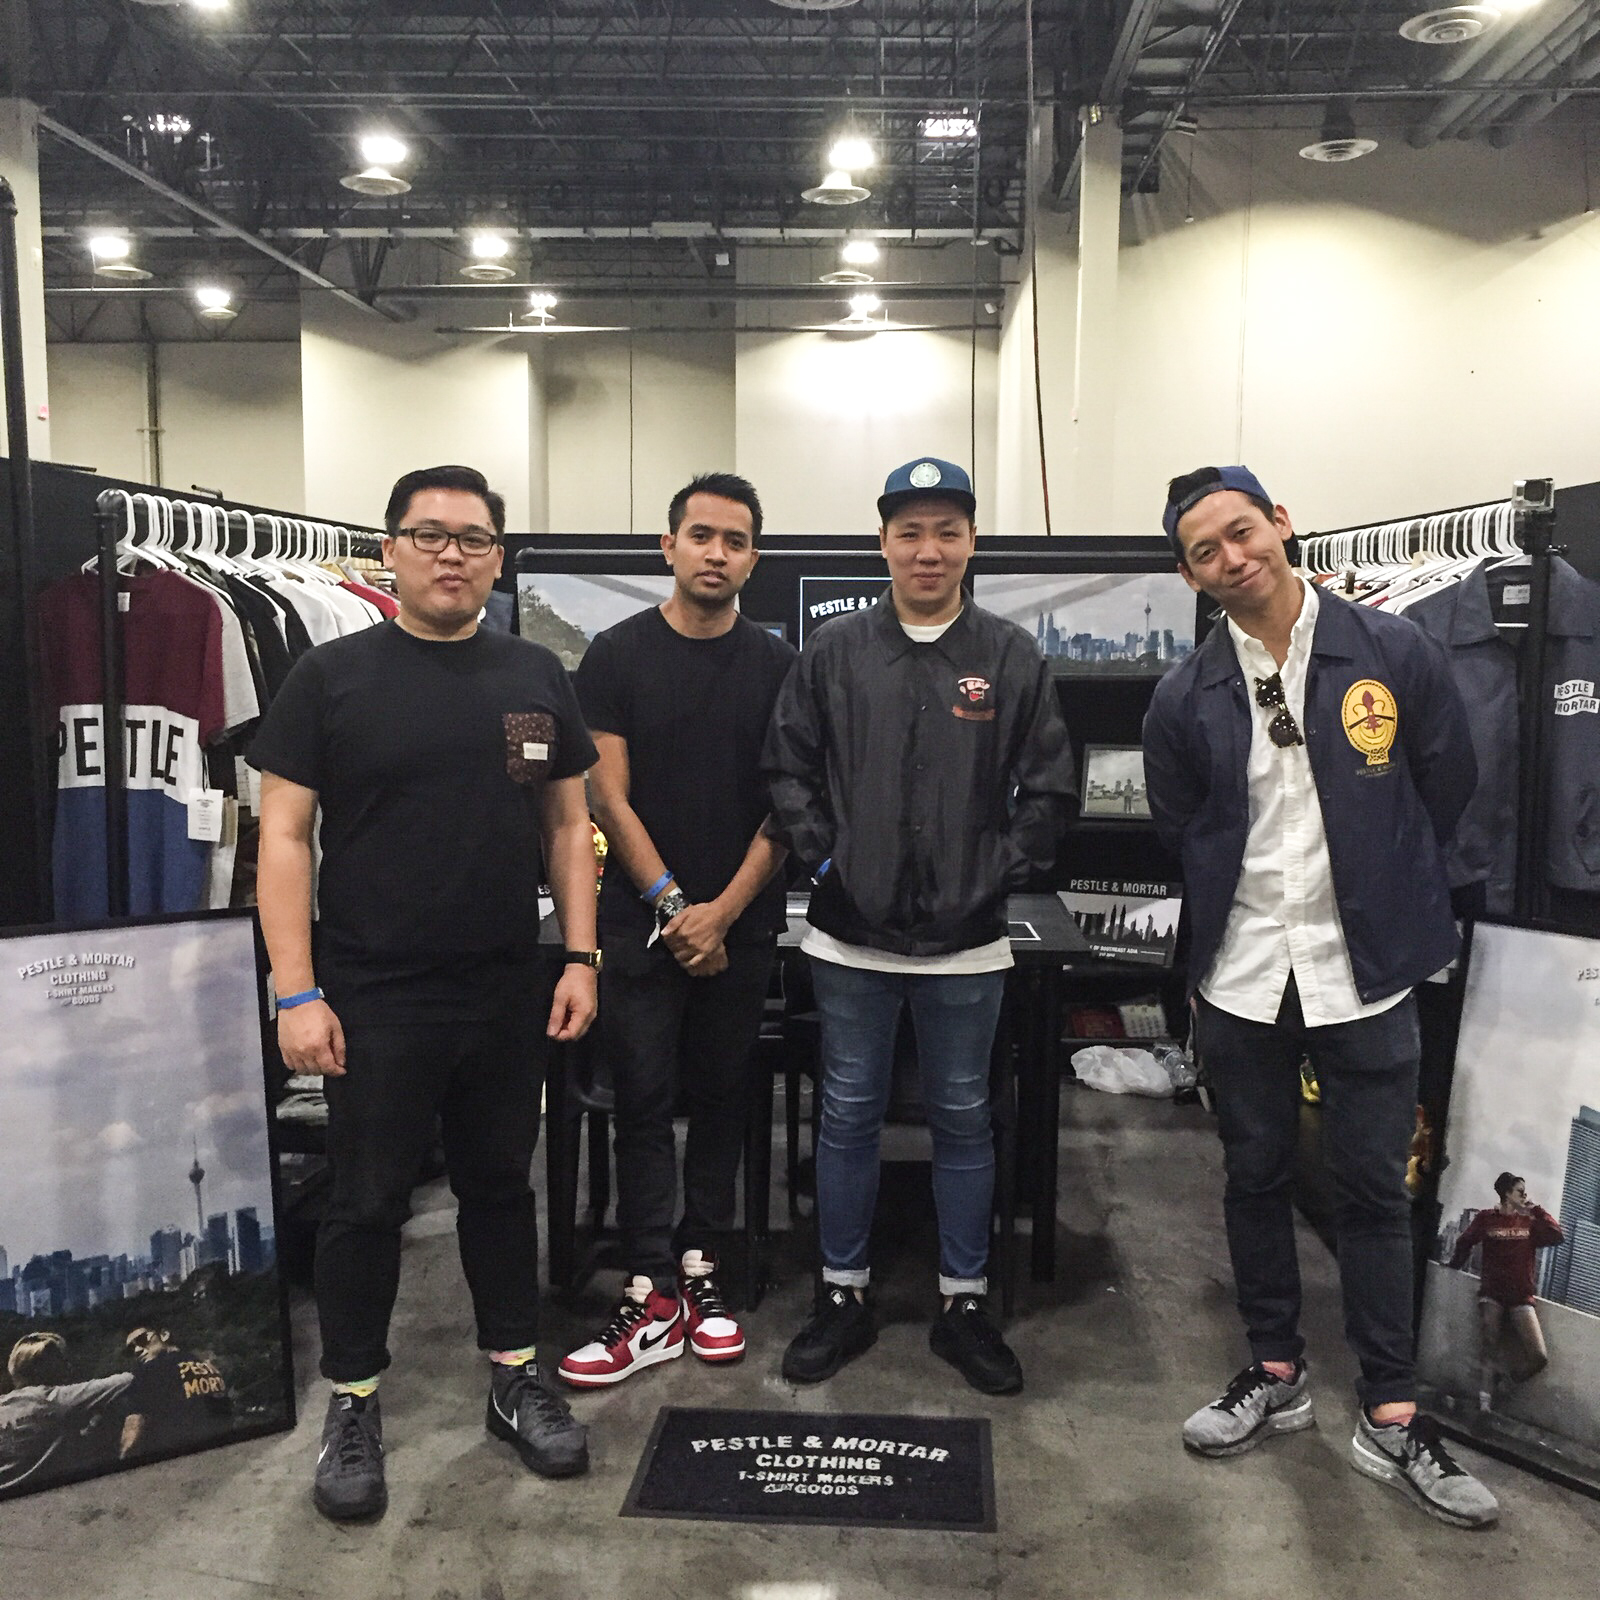 Koh (far right) and the Pestle & Mortar team were the first Malaysian clothing brand showcased at Agenda Las Vegas, a popular creative lifestyle trade show.